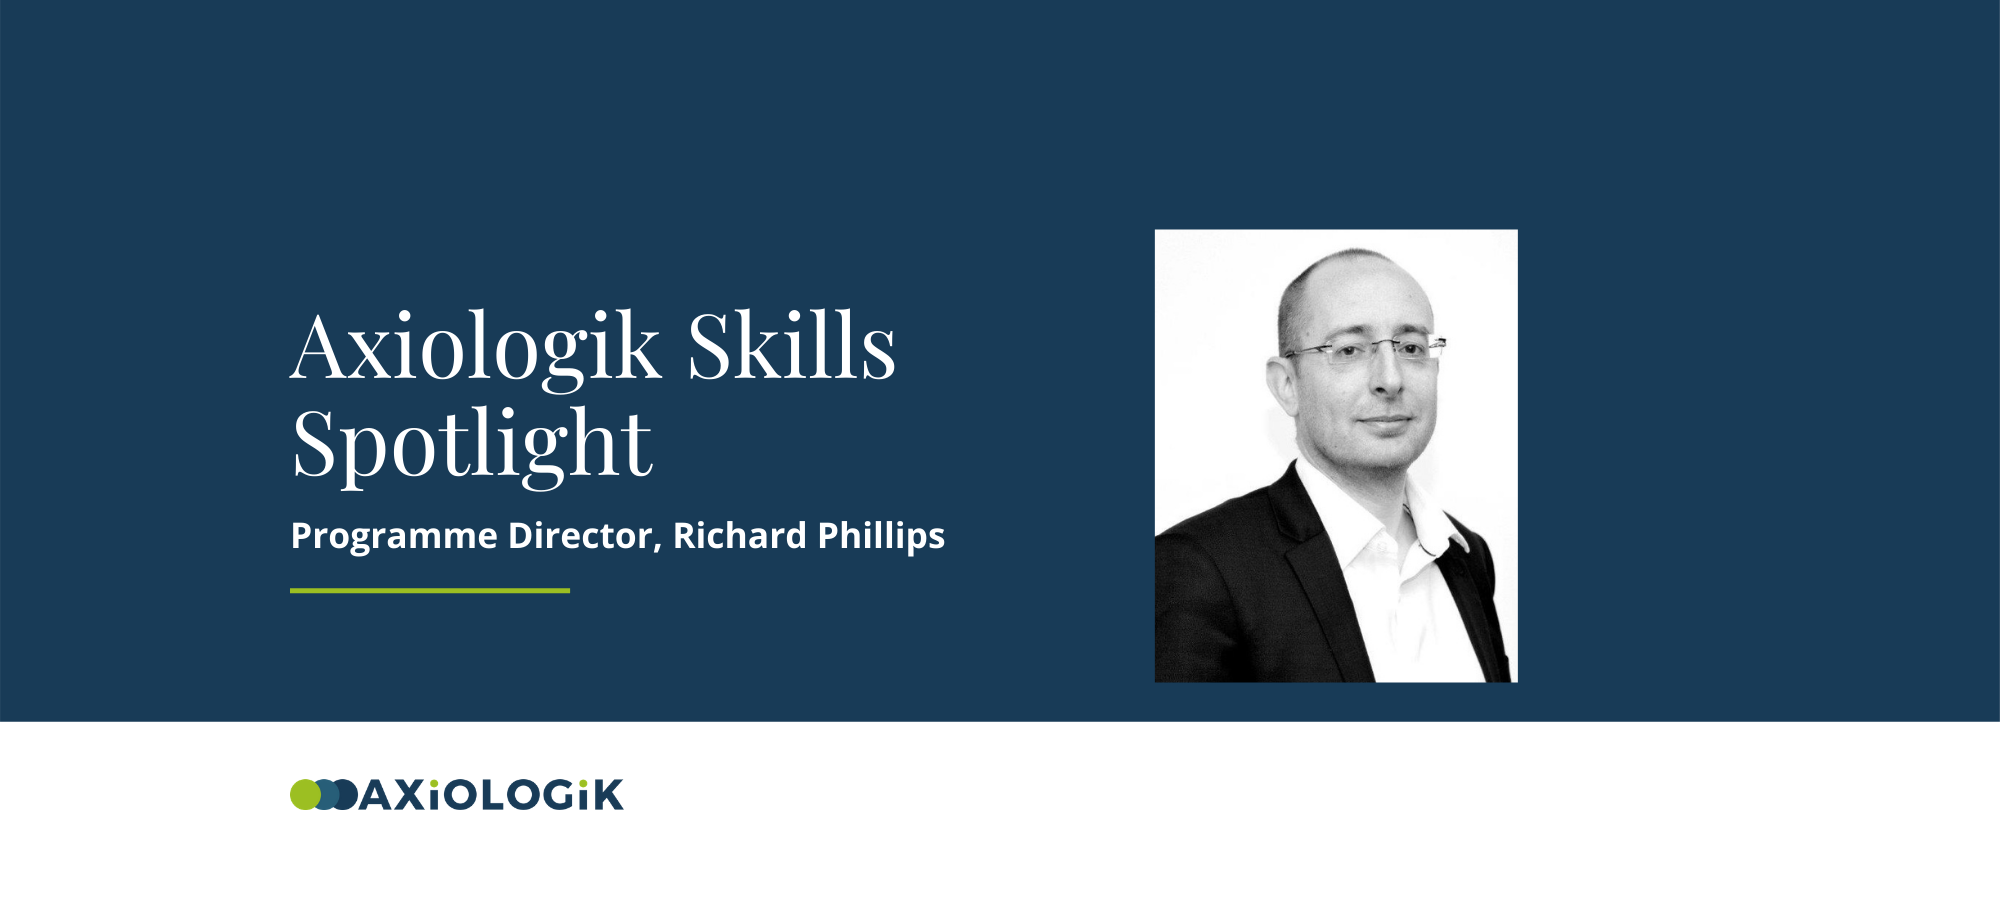 Axiologik Skills Spotlight: Richard Phillips